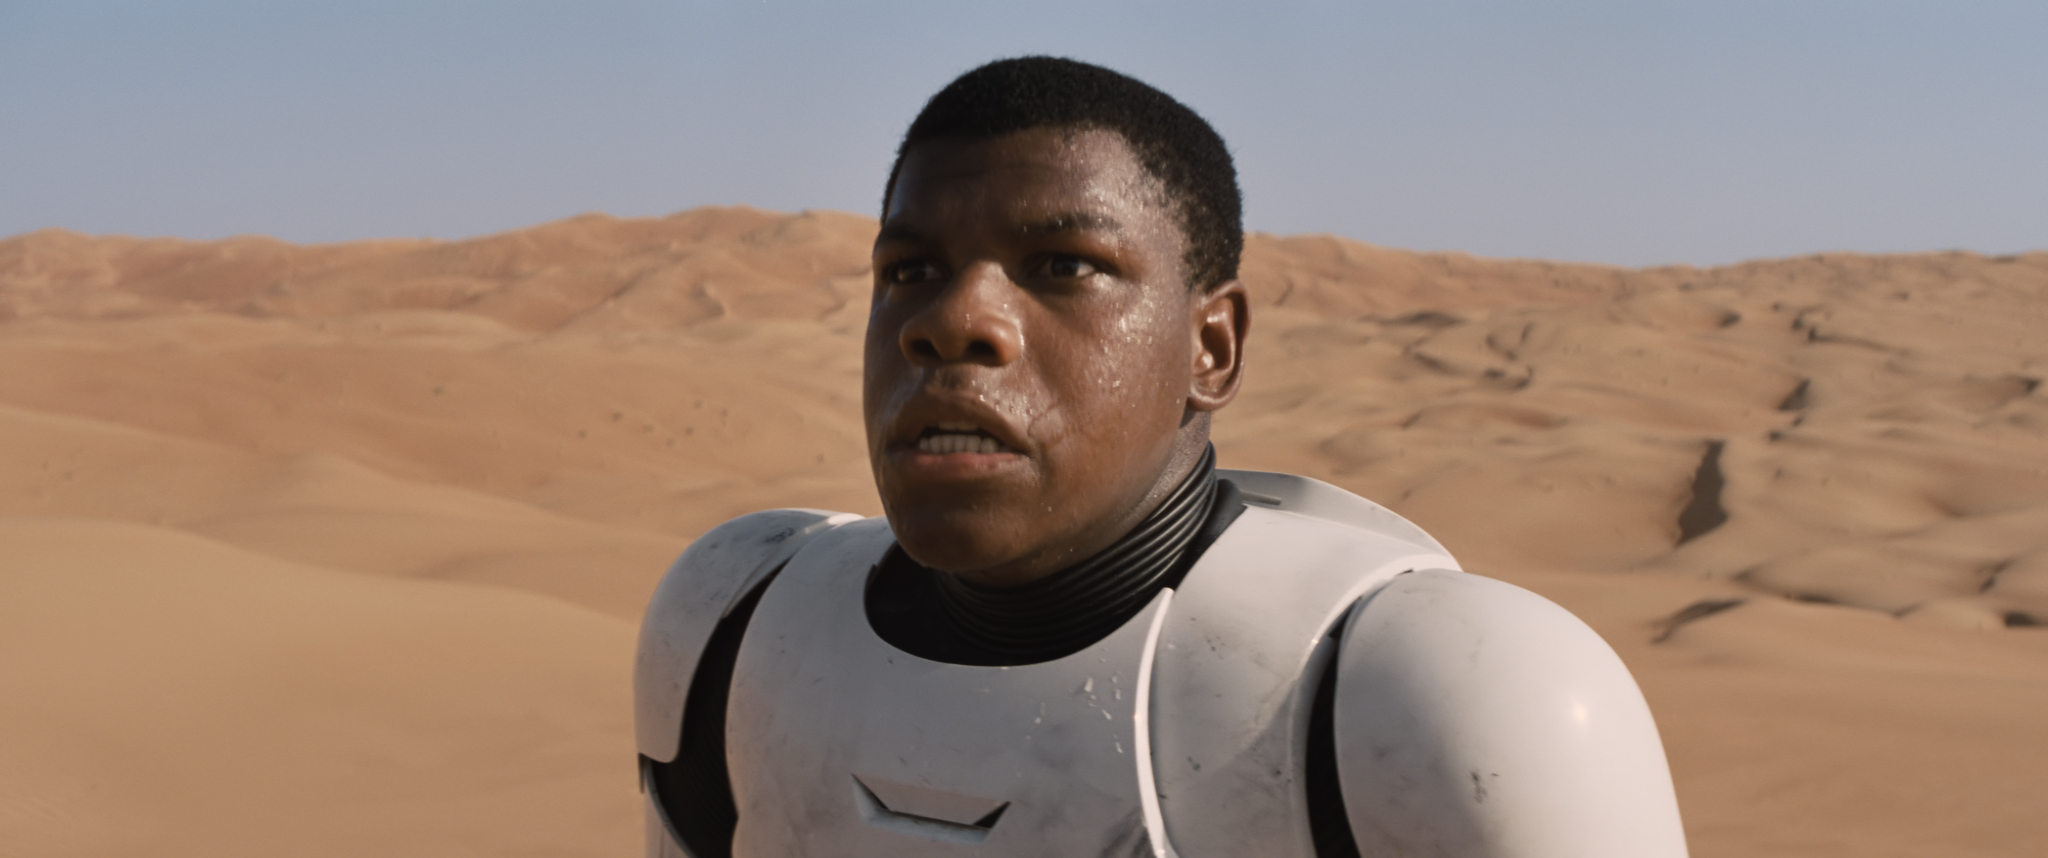 New high resolution star wars the force awakens images